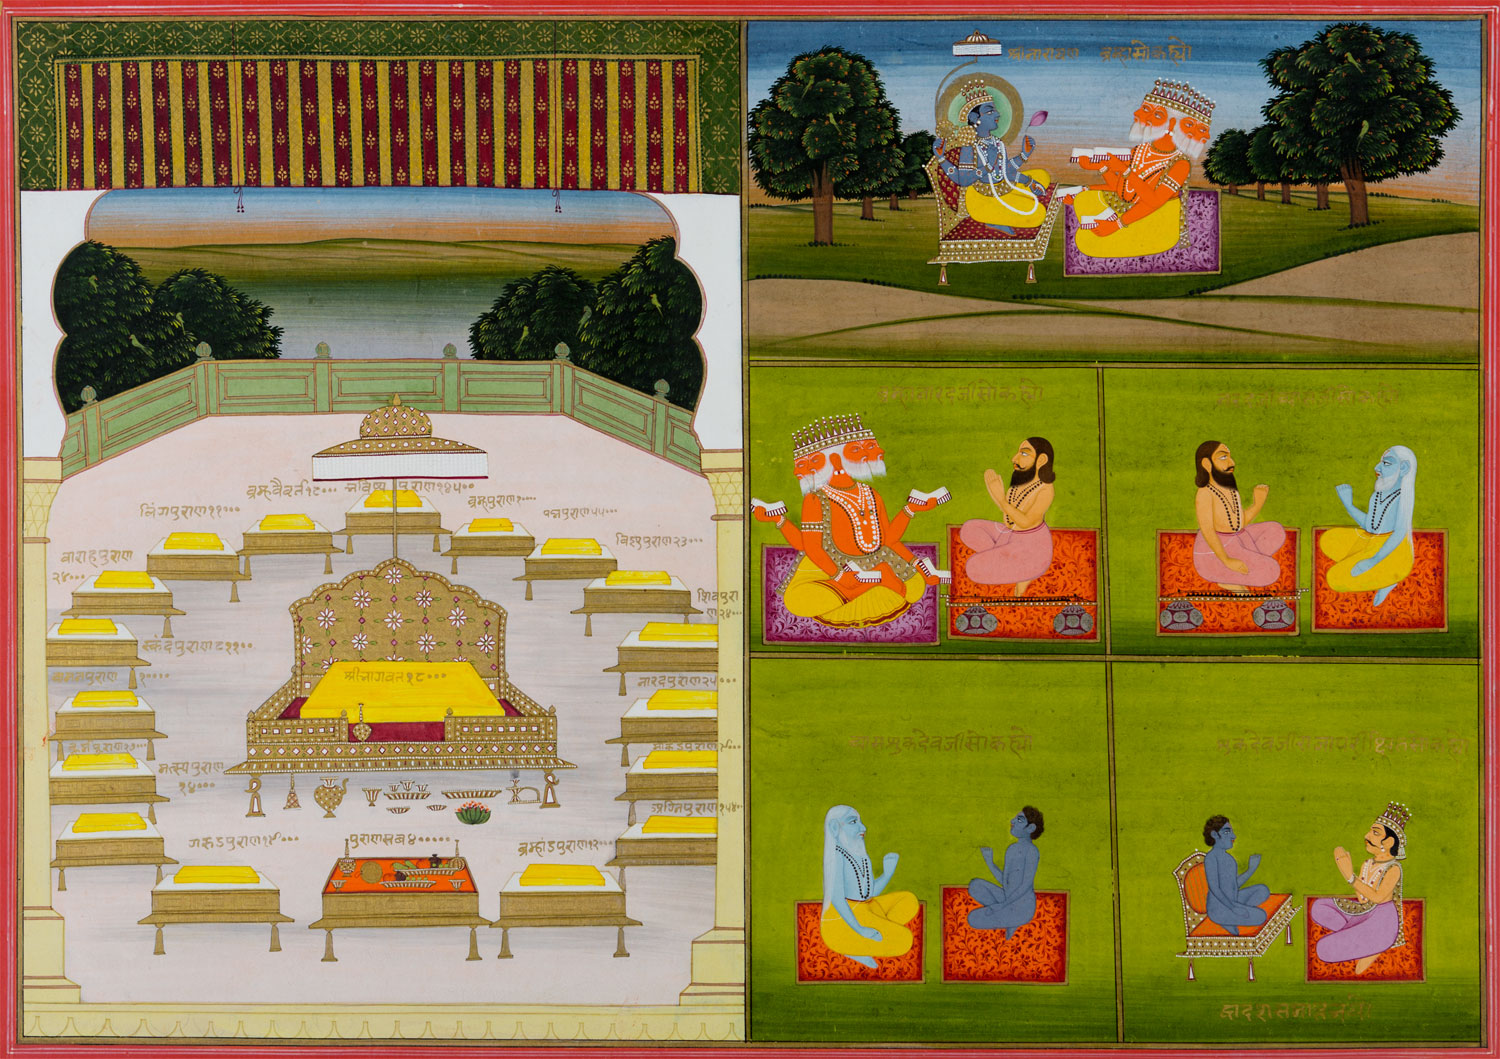 Bhagavata Purana,    Salig Ram    of Jaipur, c. 1800  Opaque watercolour and gold on paper; H. 25.5 cm, W. 36 cm  From the Pre-Modern Art collections at MAP